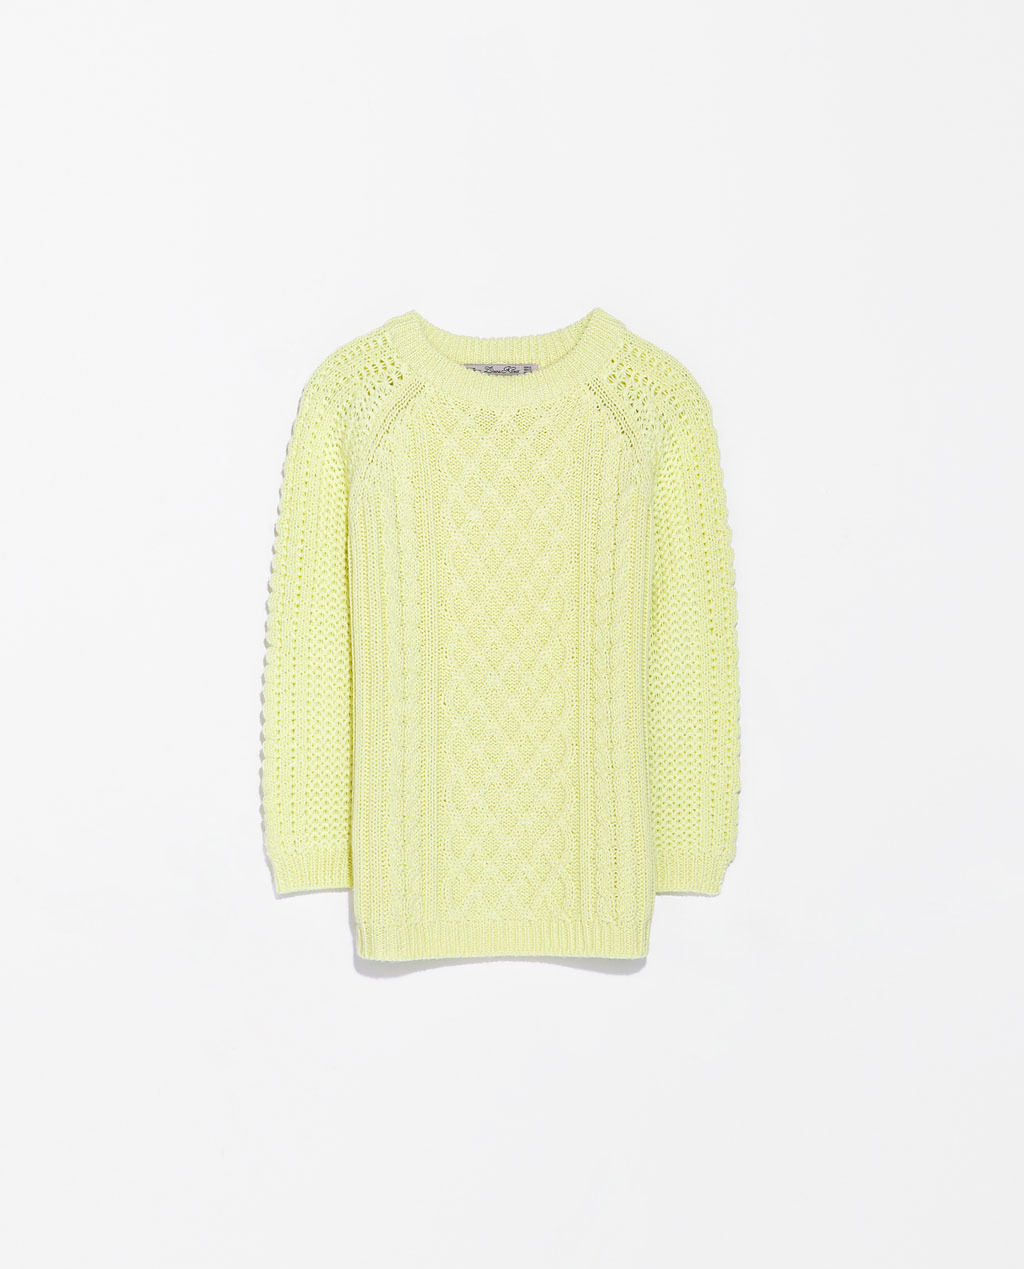 Fancy Knit Sweater - neckline: round neck; style: standard; pattern: cable knit; predominant colour: primrose yellow; occasions: casual, creative work; length: standard; fibres: acrylic - 100%; fit: standard fit; sleeve length: 3/4 length; sleeve style: standard; texture group: knits/crochet; pattern type: knitted - big stitch; pattern size: standard; trends: sorbet shades; season: s/s 2014